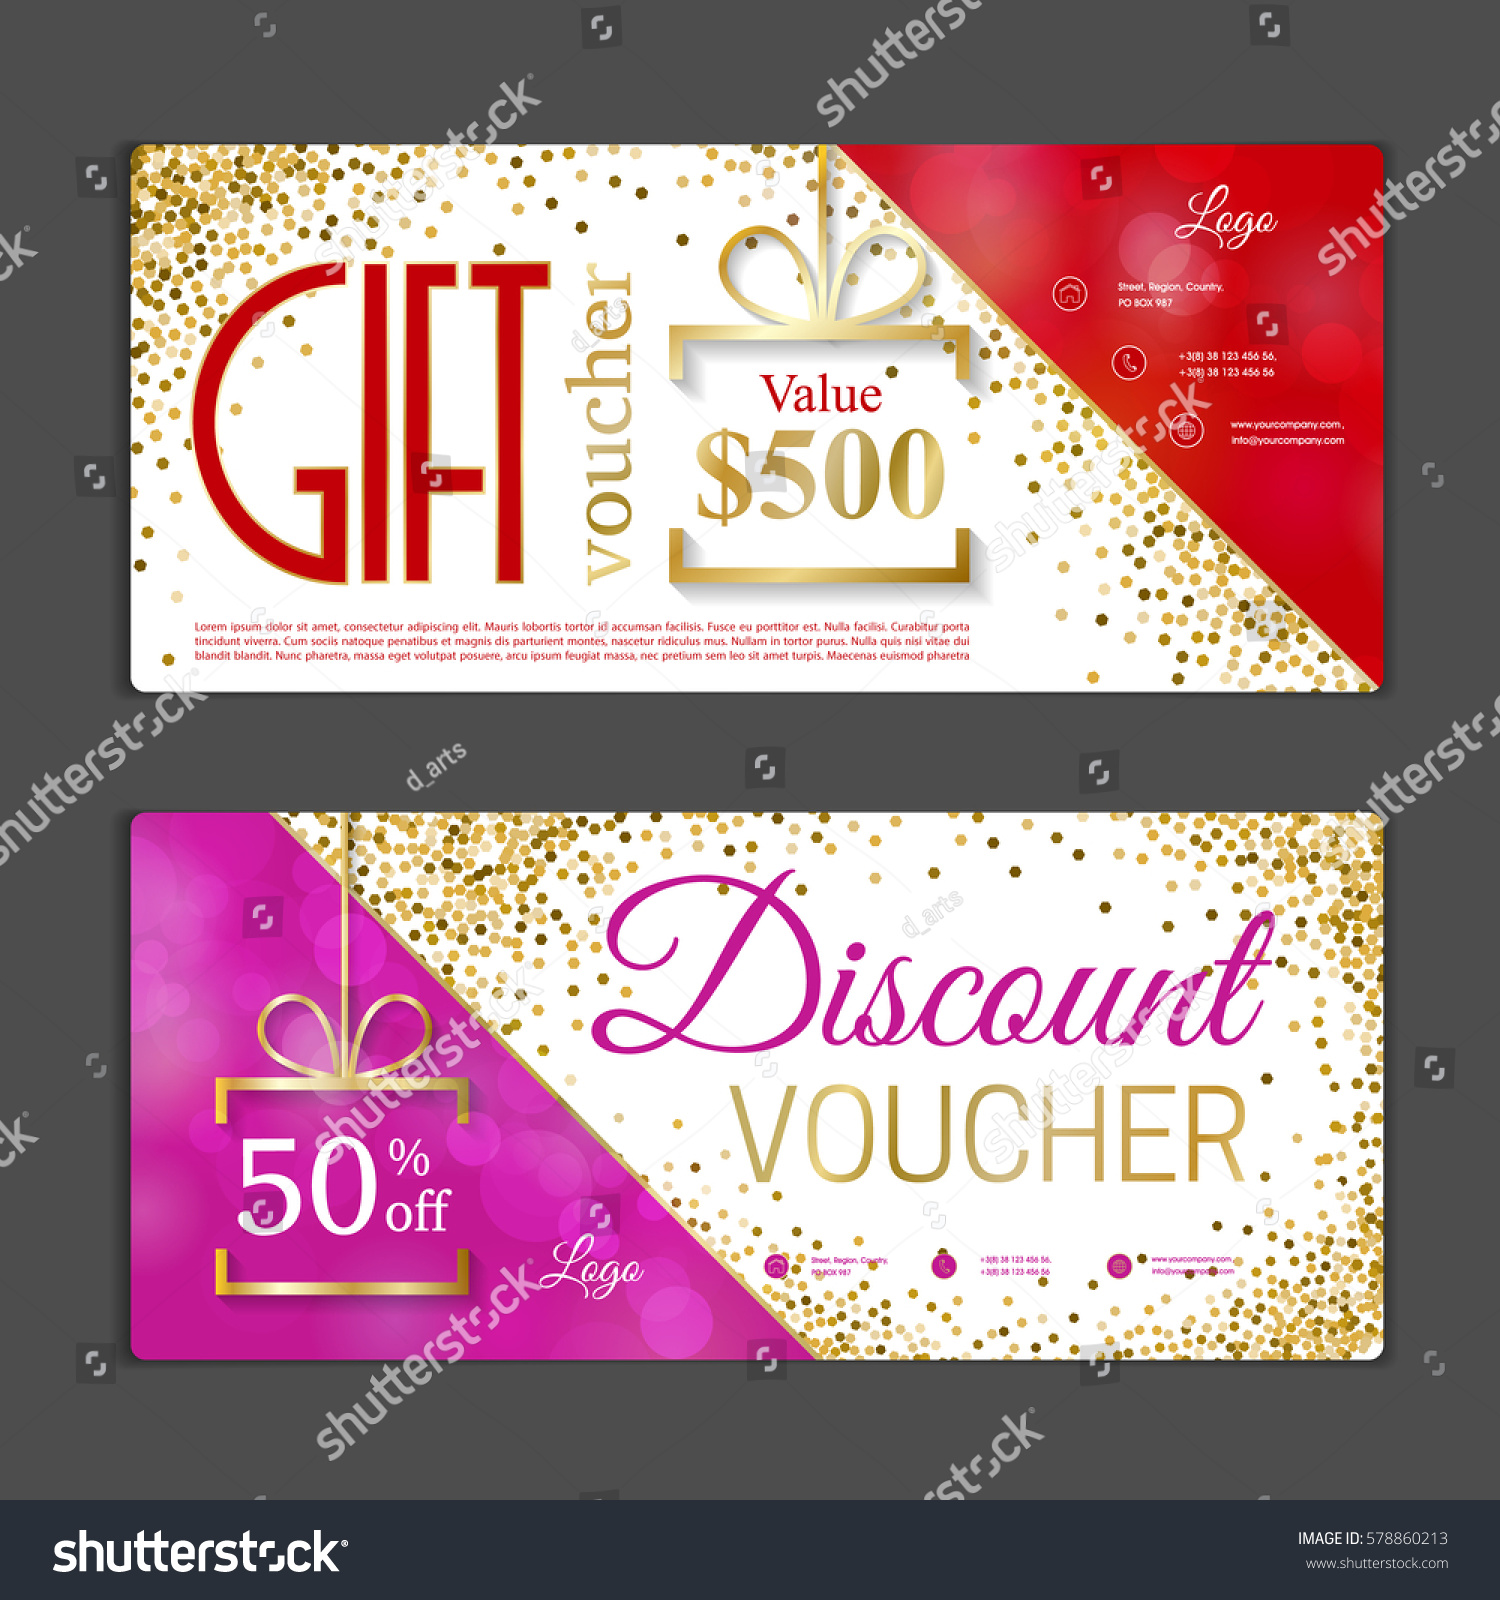 eastreads.ml is one of the most visited gift card websites online. The site was established in to sell gift cards and certificates for more than retailers. As of , it offers both physical and digital gift cards for some of the most popular retail stores in the world.